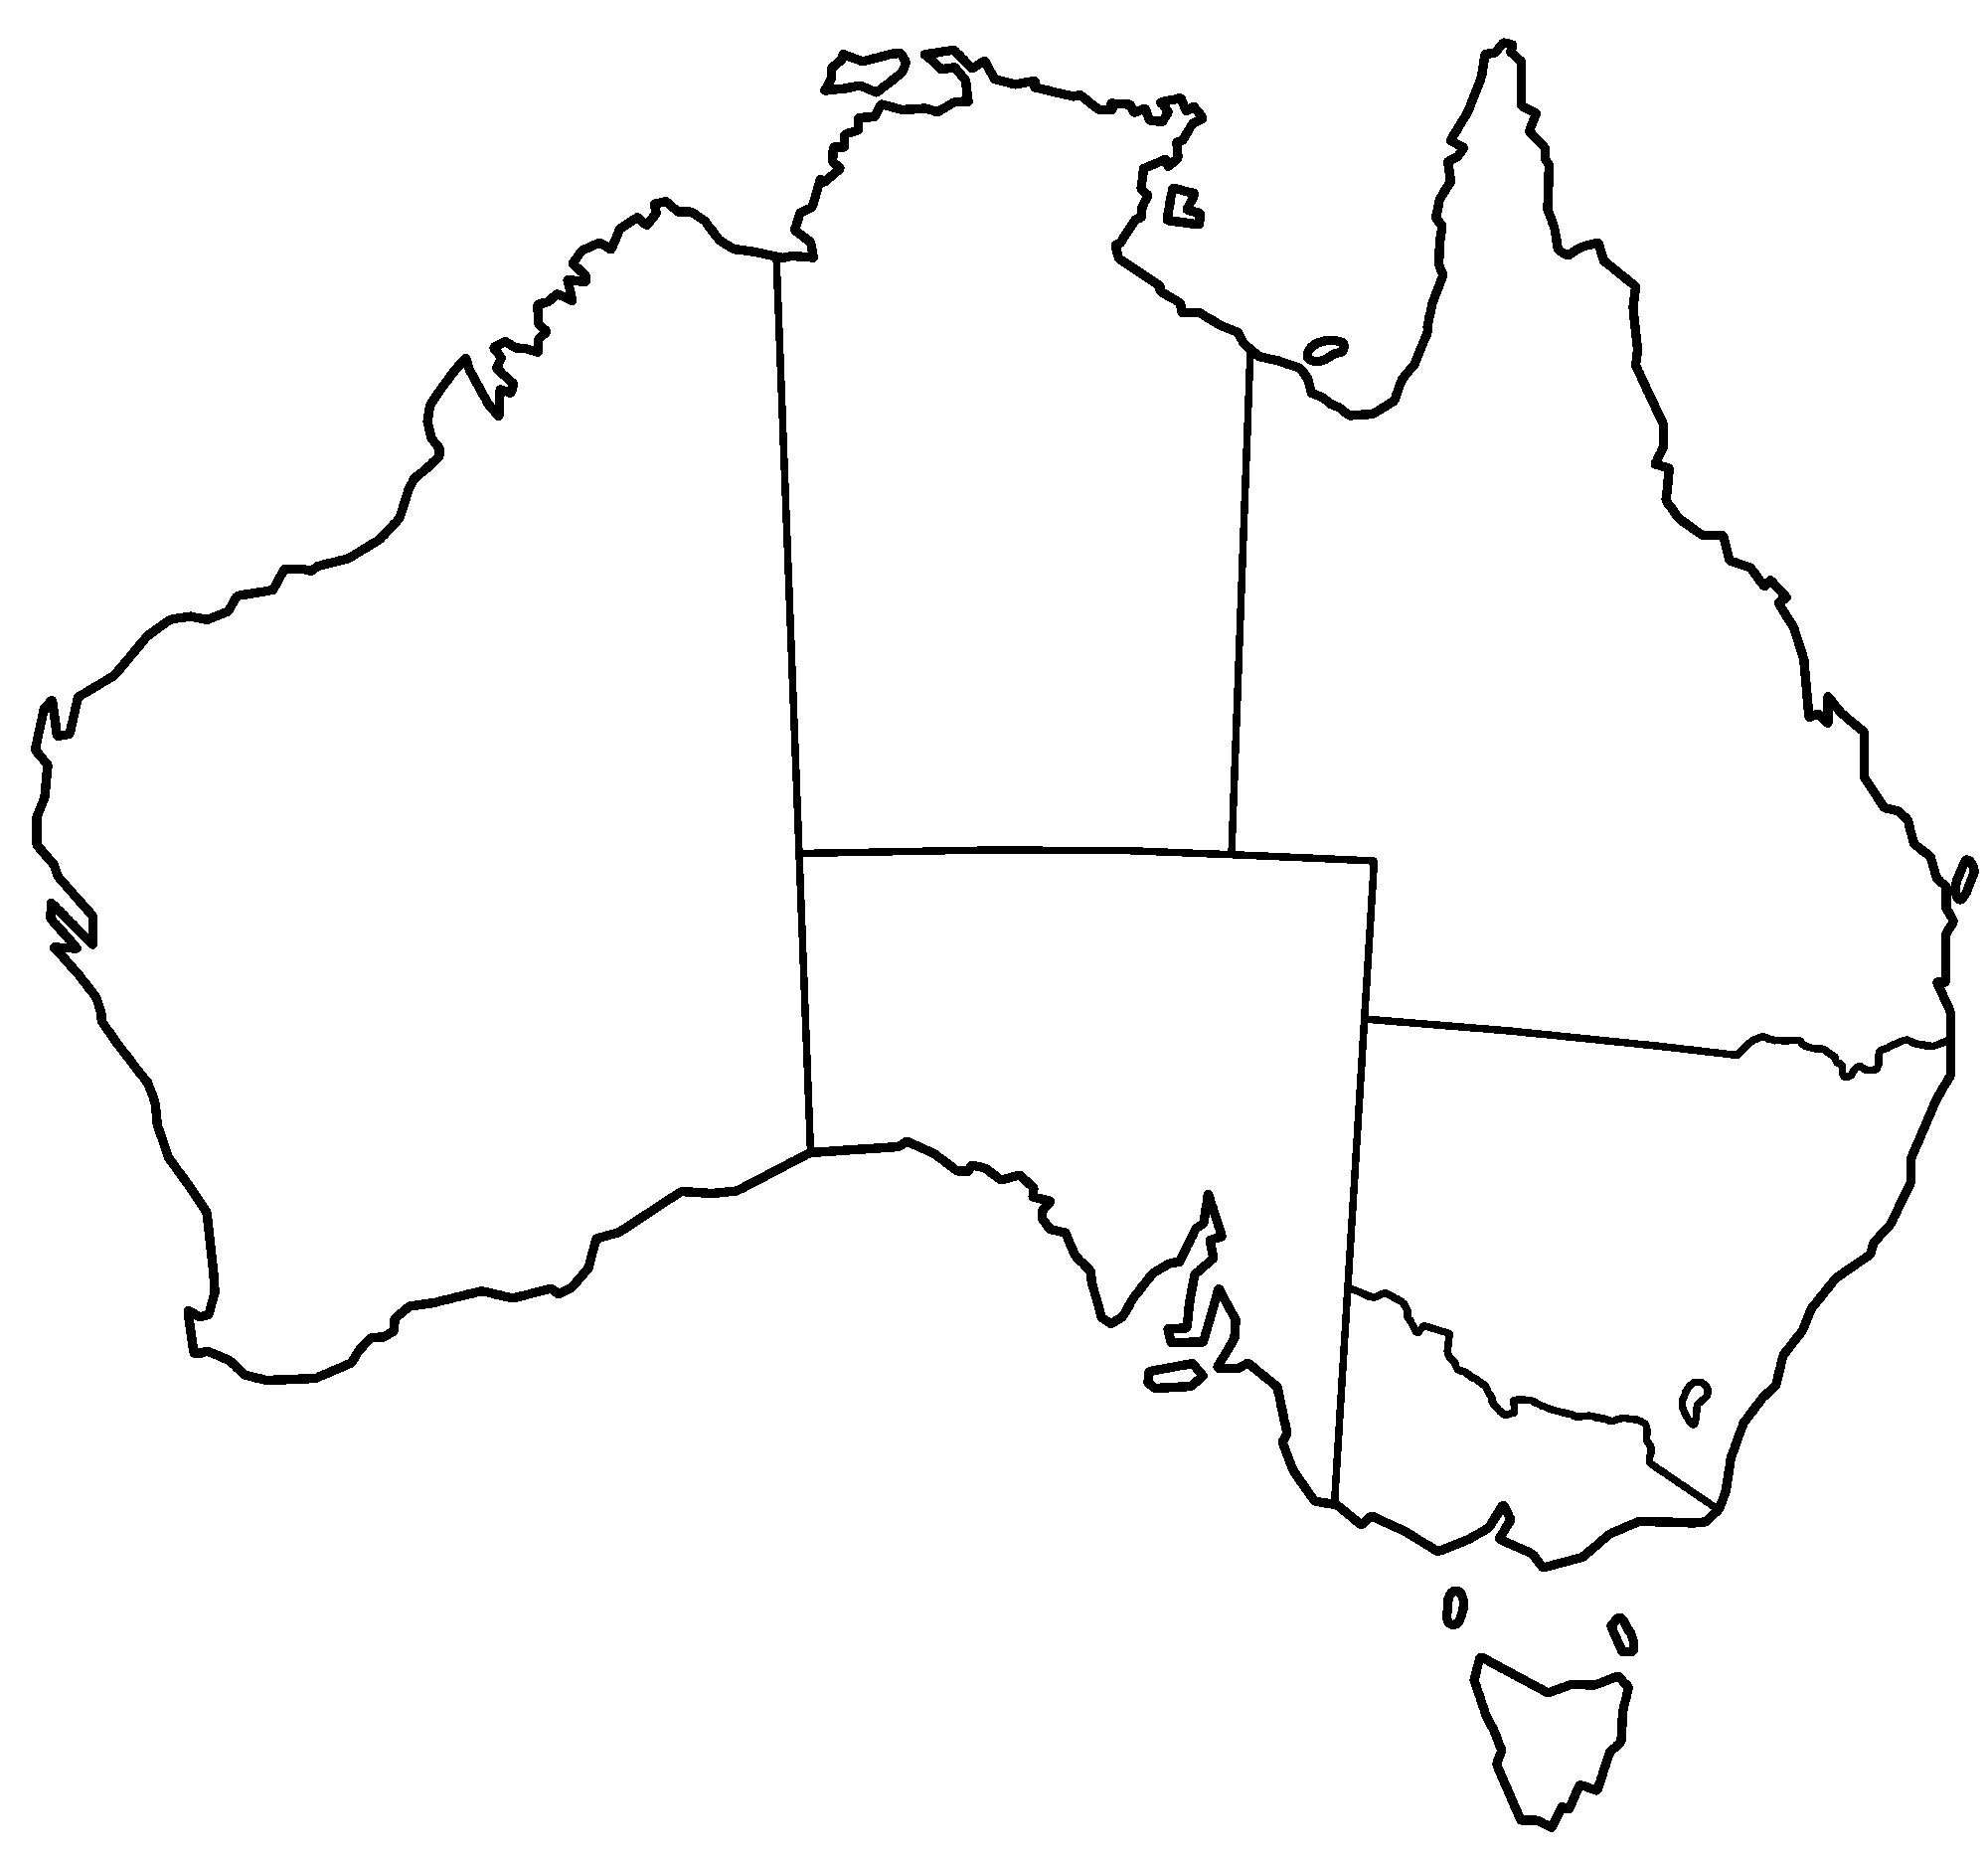 map of australia coloring page free printable coloring pages - Australia Coloring Pages Kids